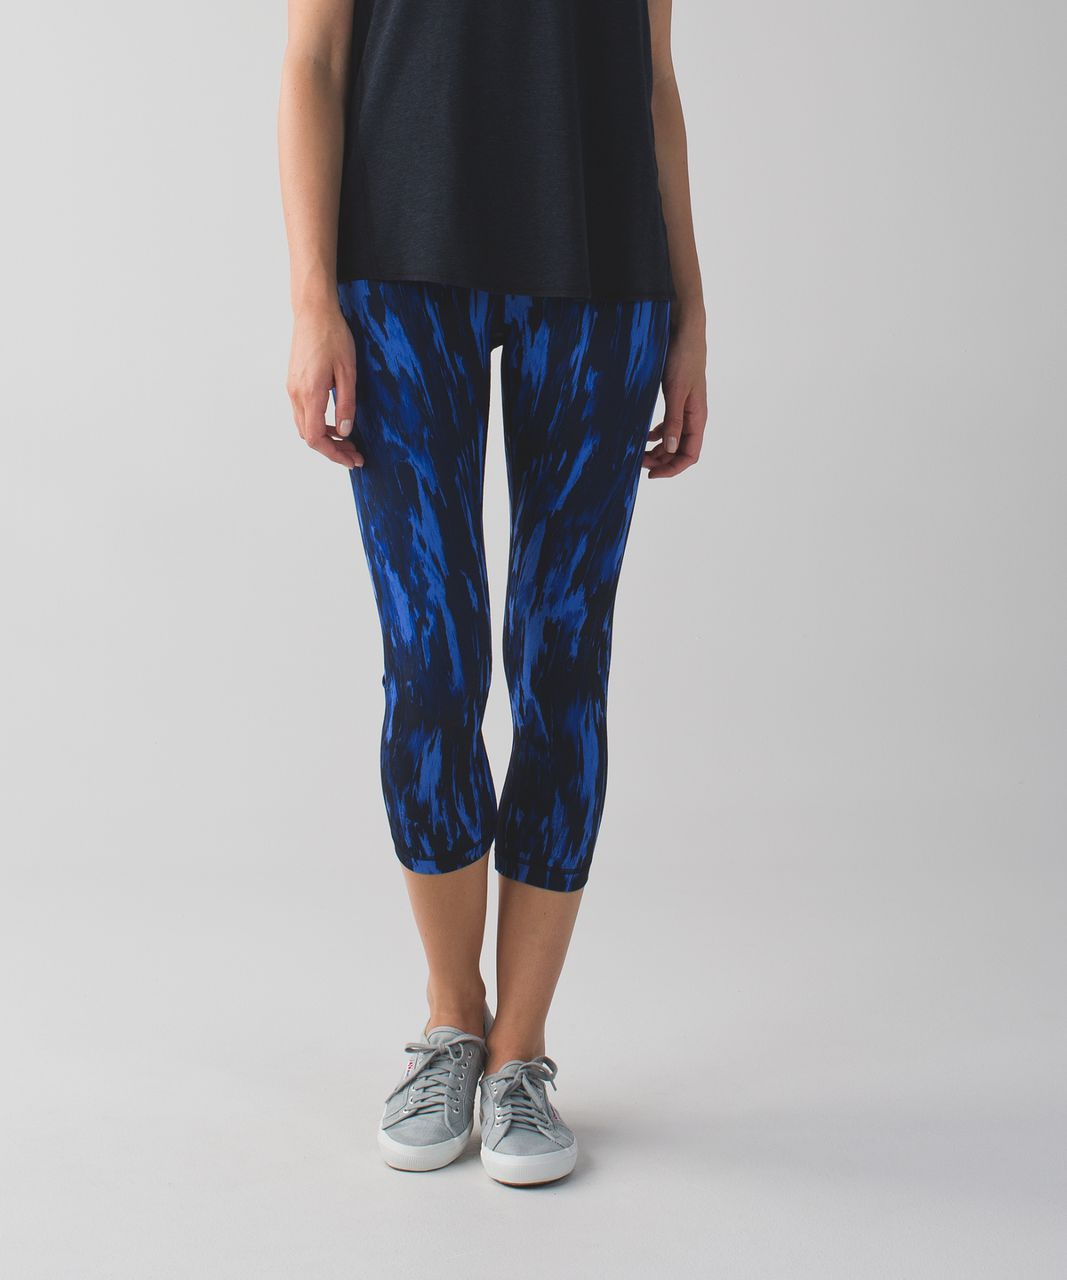 Lululemon Wunder Under Crop (Hi-Rise) - Painted Animal Sprinkler Black